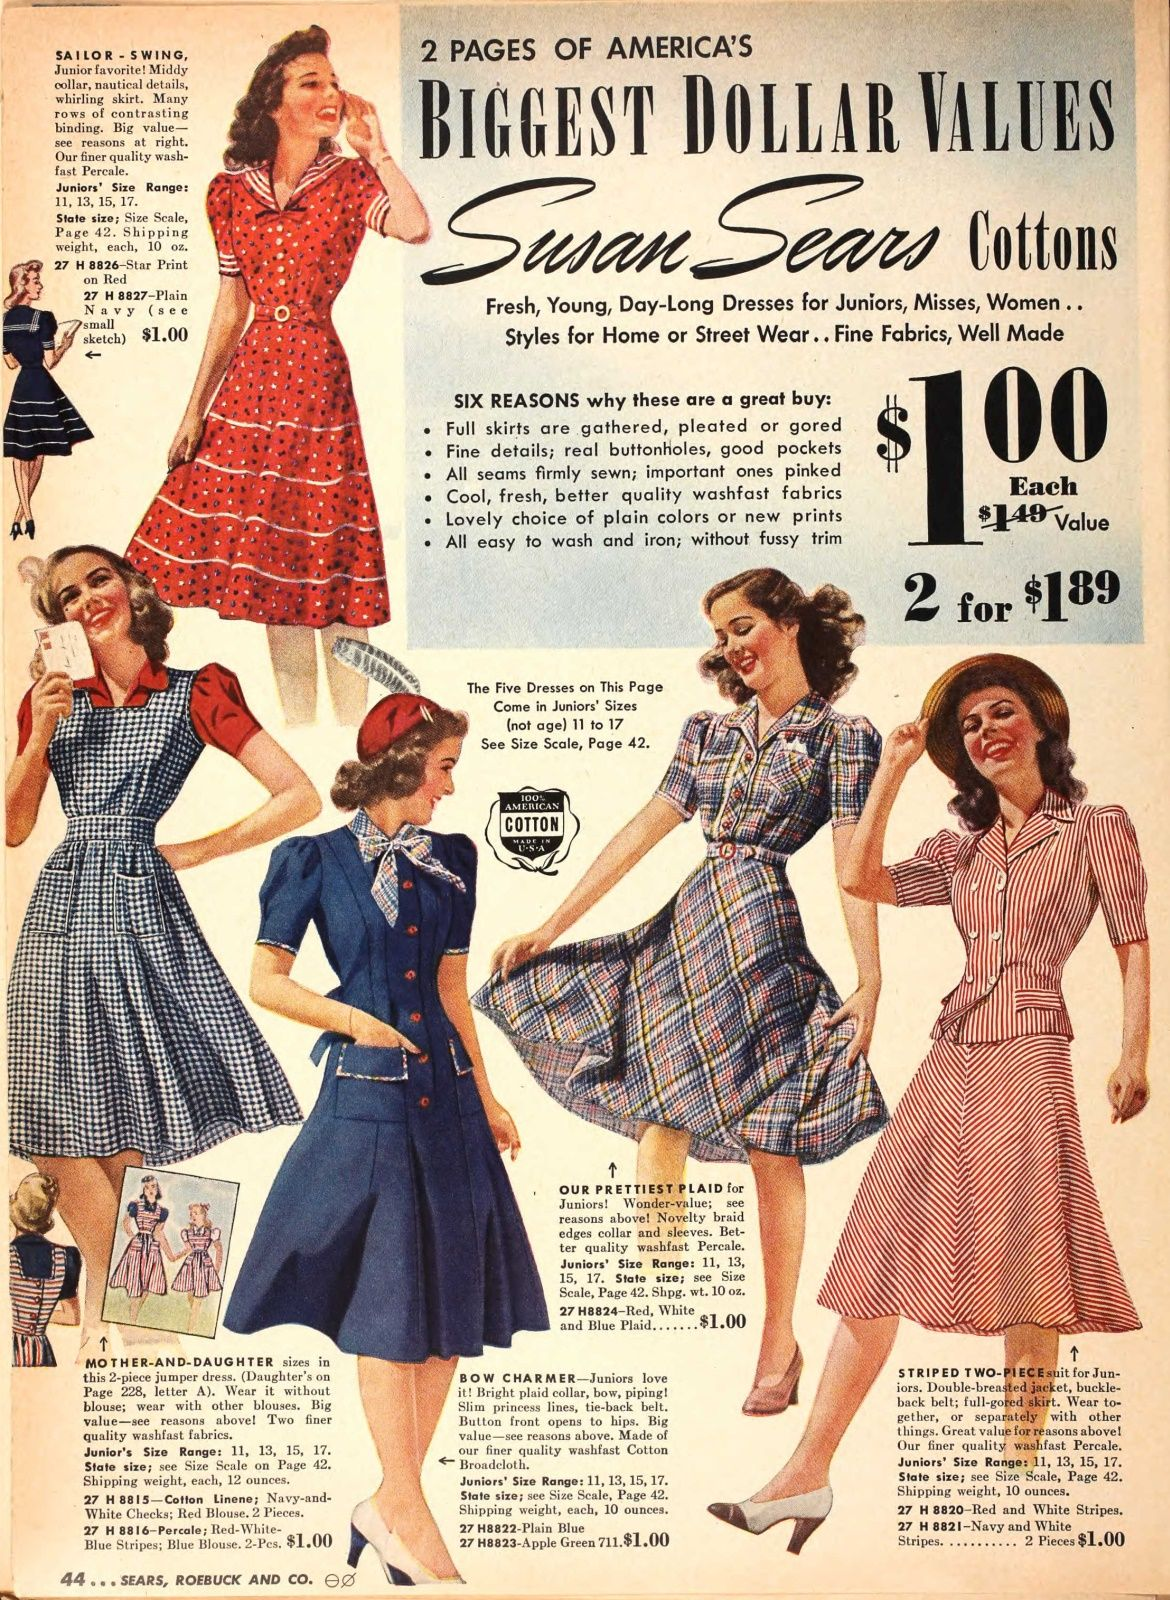 1940s Fashions In Red White Blue With Images: 1940s Fashions In Red, White & Blue (With Images)